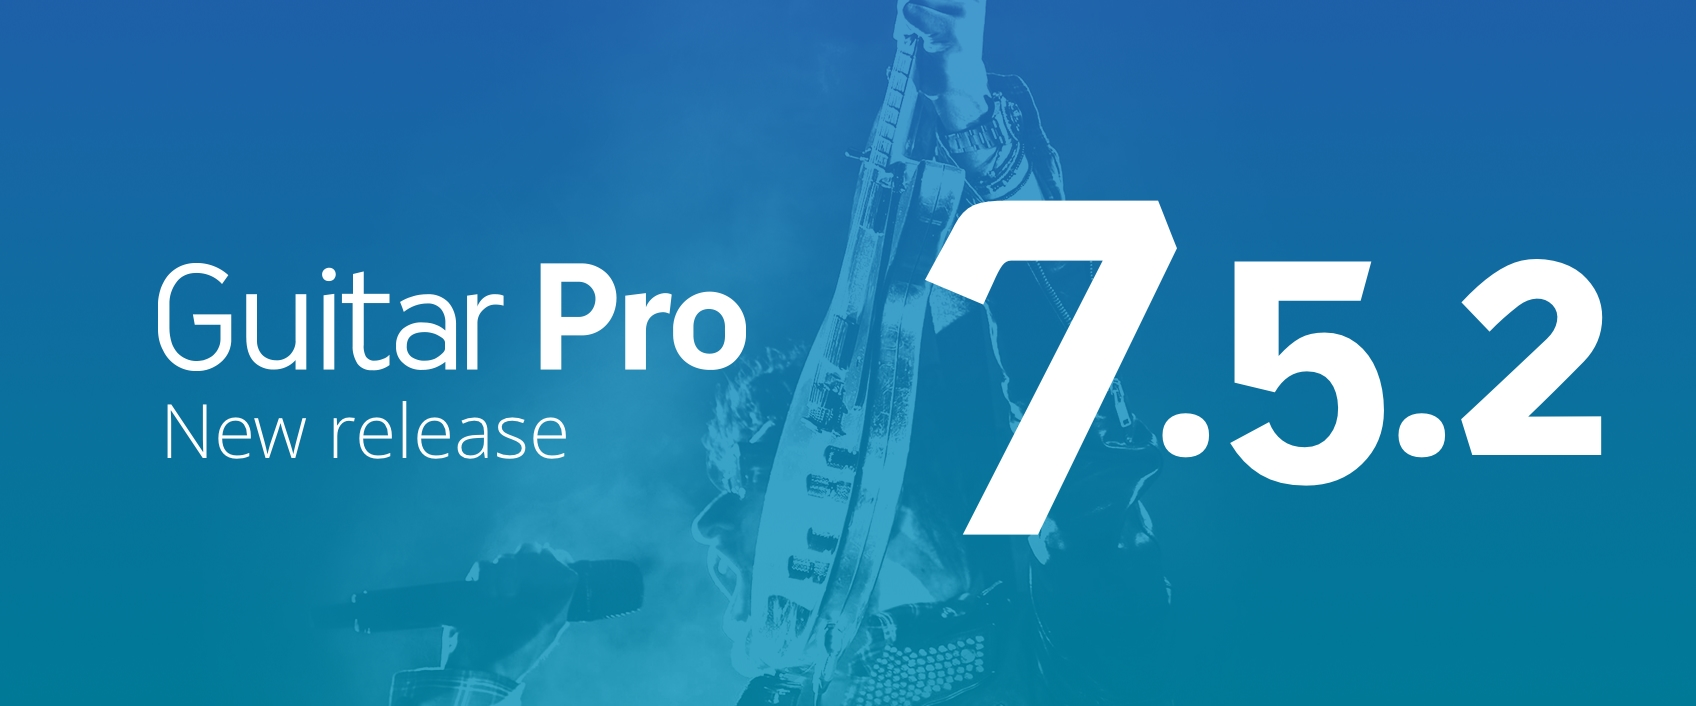 Guitar Pro 7.5.2 now available